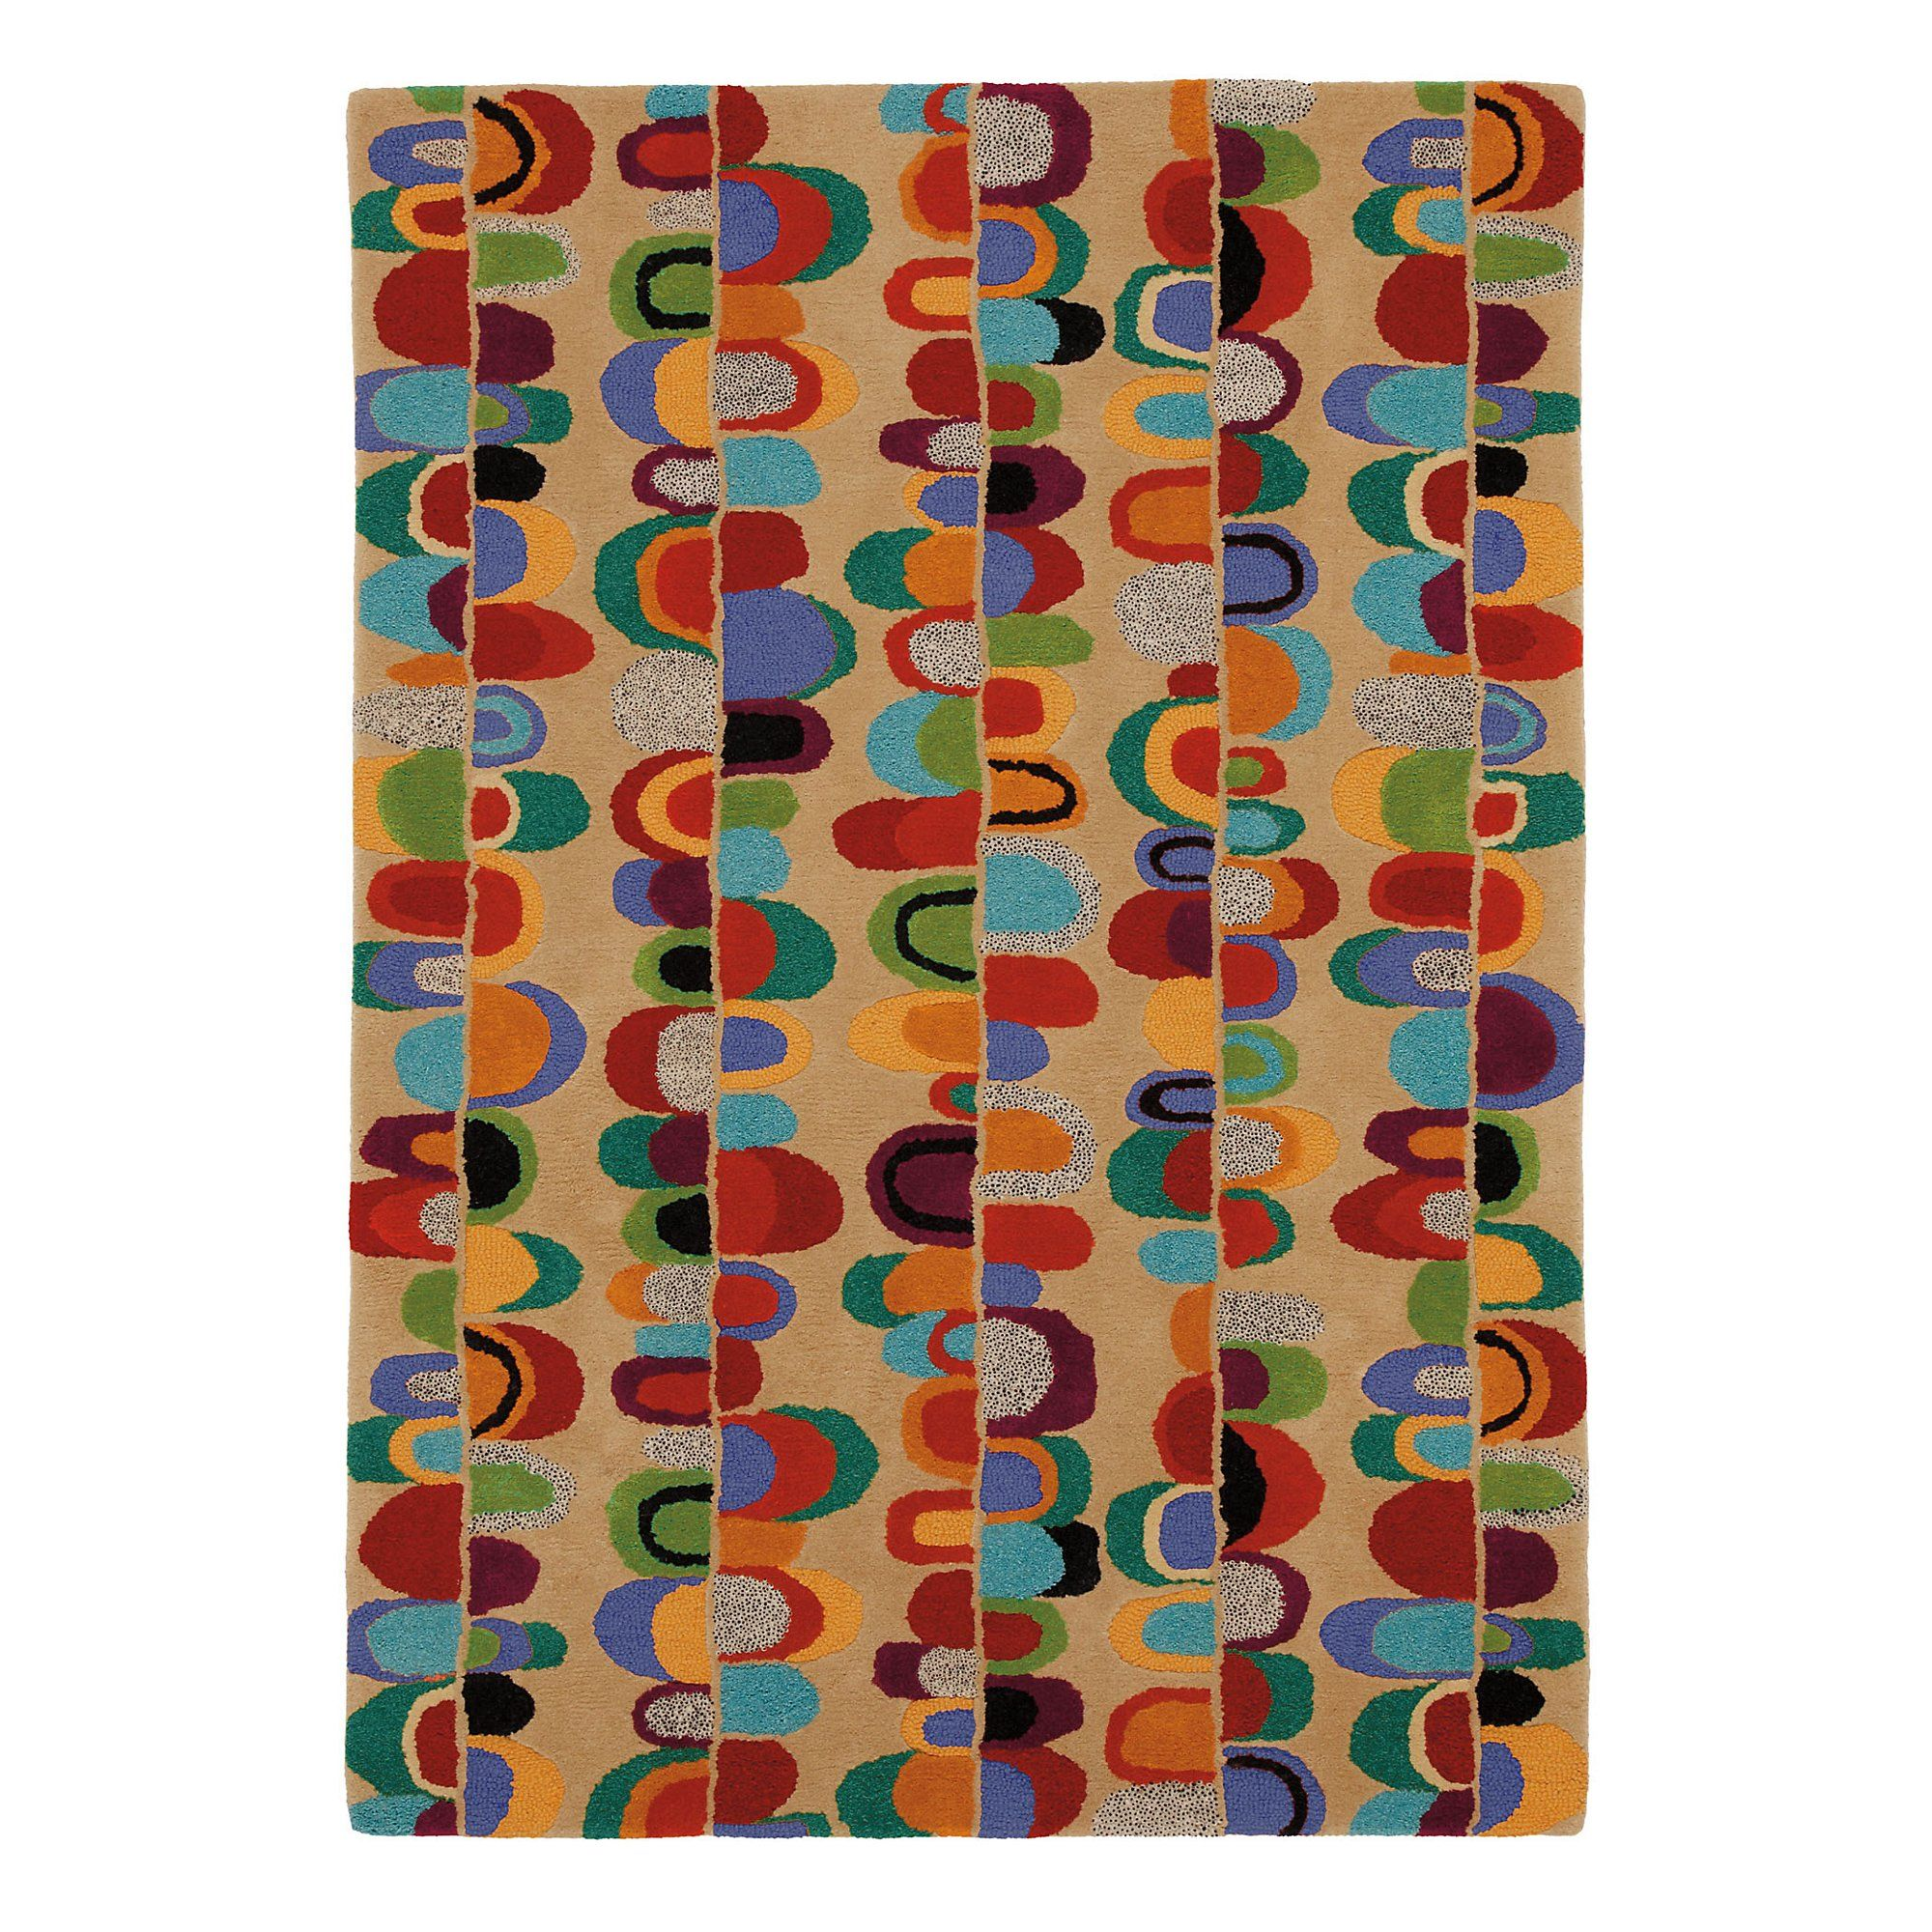 Paper Chain Rug In Sand Geometric Pattern Tufted Rugs Handmade Area